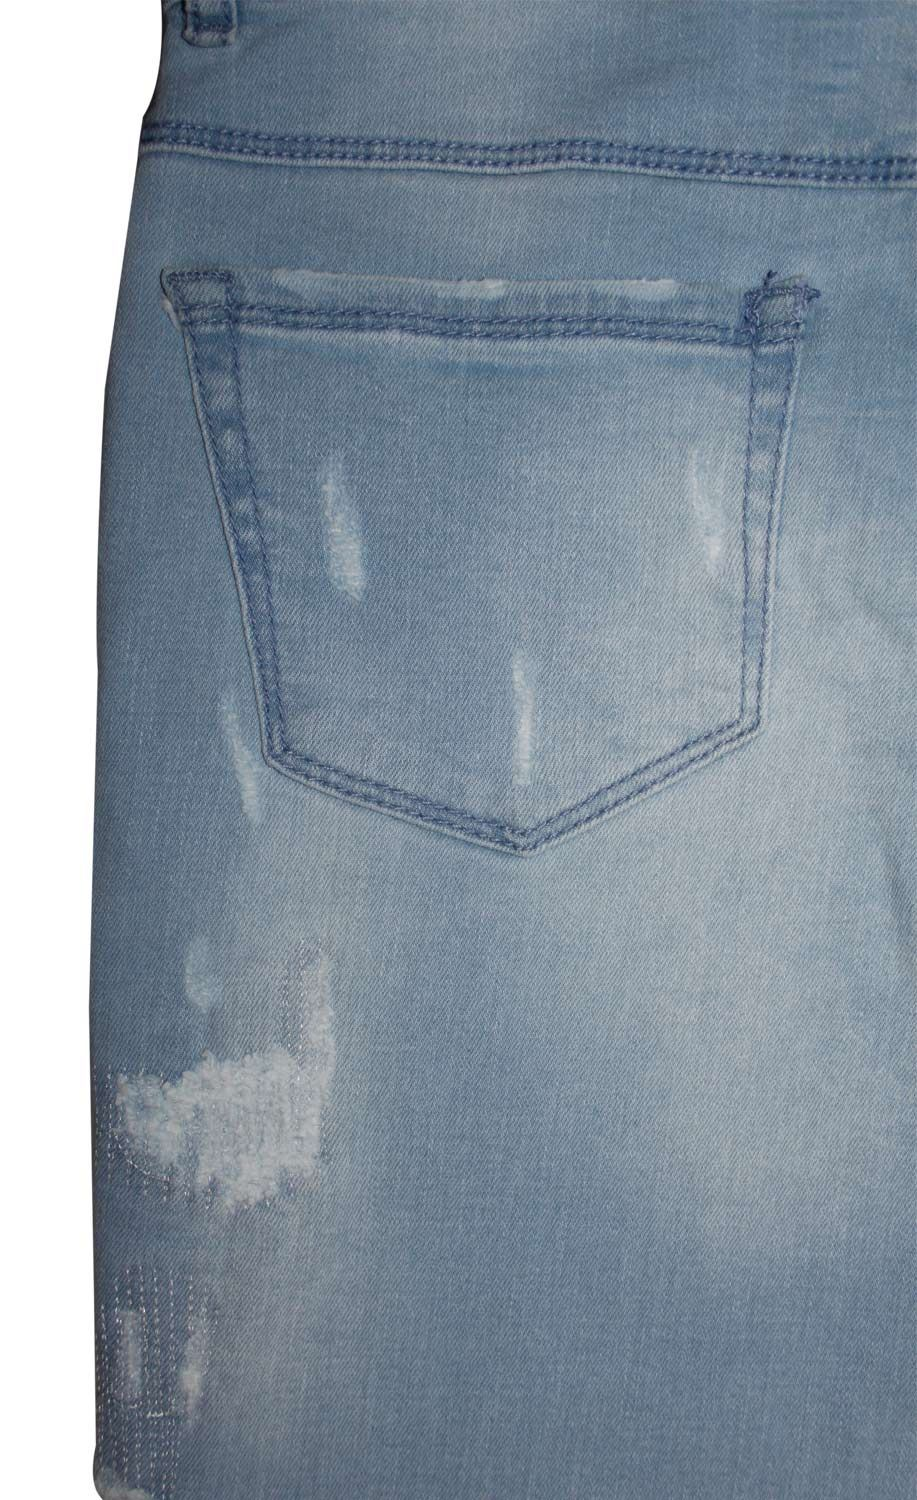 New Ladies Stretch Ripped Repair Jeans Zip Fly Womens Buttons Cotton Denim Pants